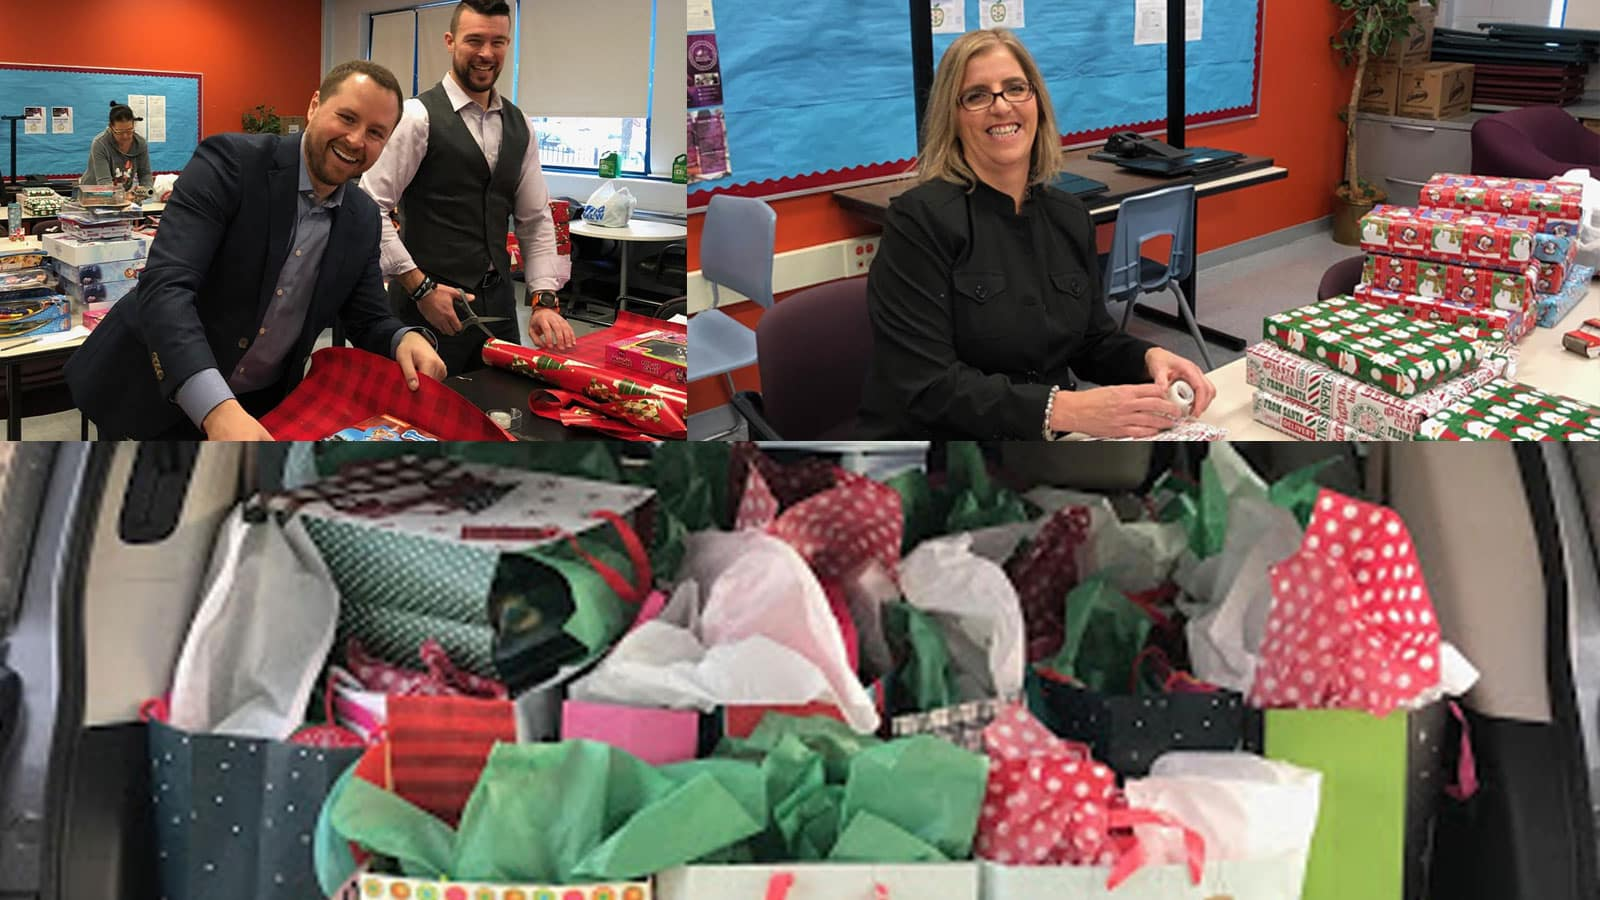 Berman Auto Group's Todd Berman, Elain Swift, and Anthony DeJesus wrapping and delivering present for Avondale-Logandale School